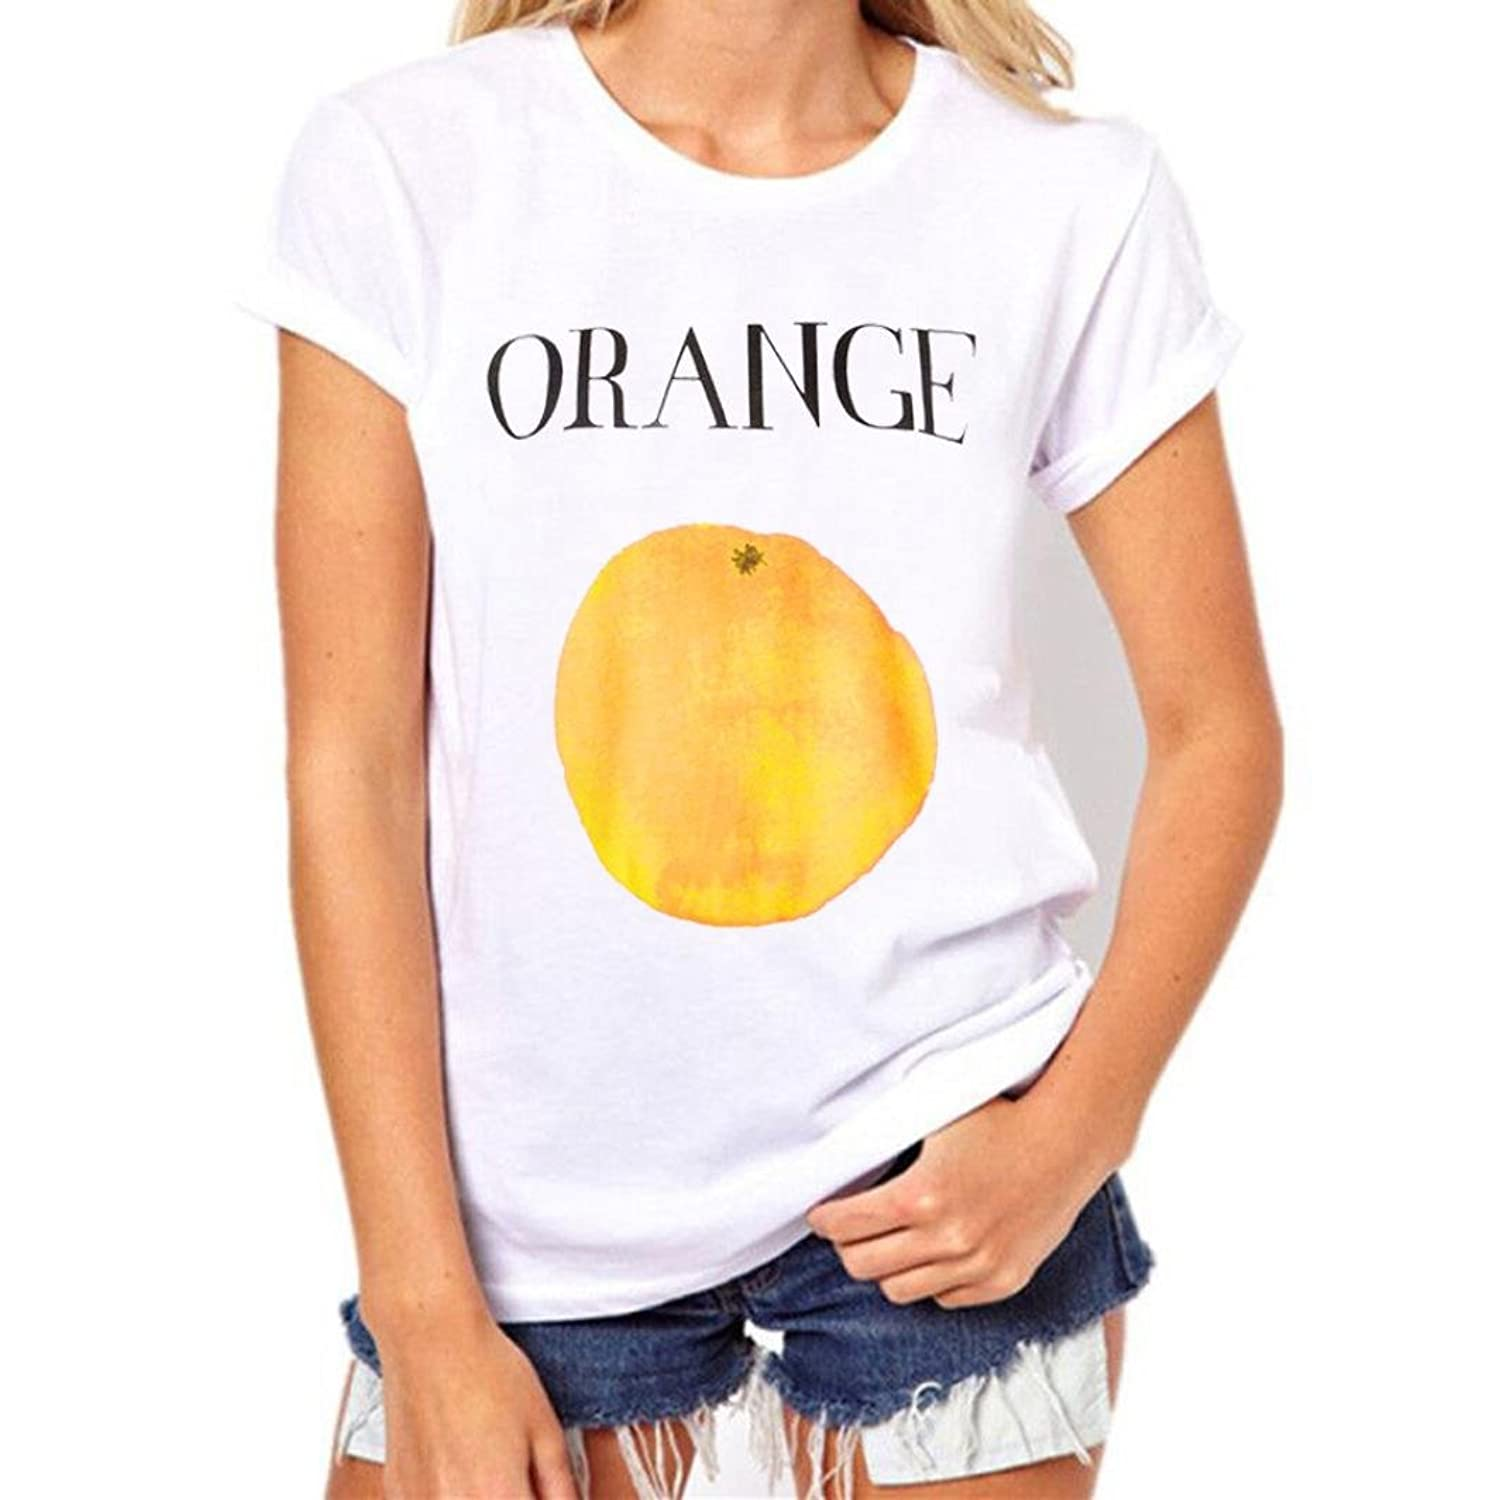 Amazon.com: FORUU womens Tops & Tees T Shirts for Womens, FORUU Fruit Letter Printing Short Sleeve Blouse Tees Tops: Clothing